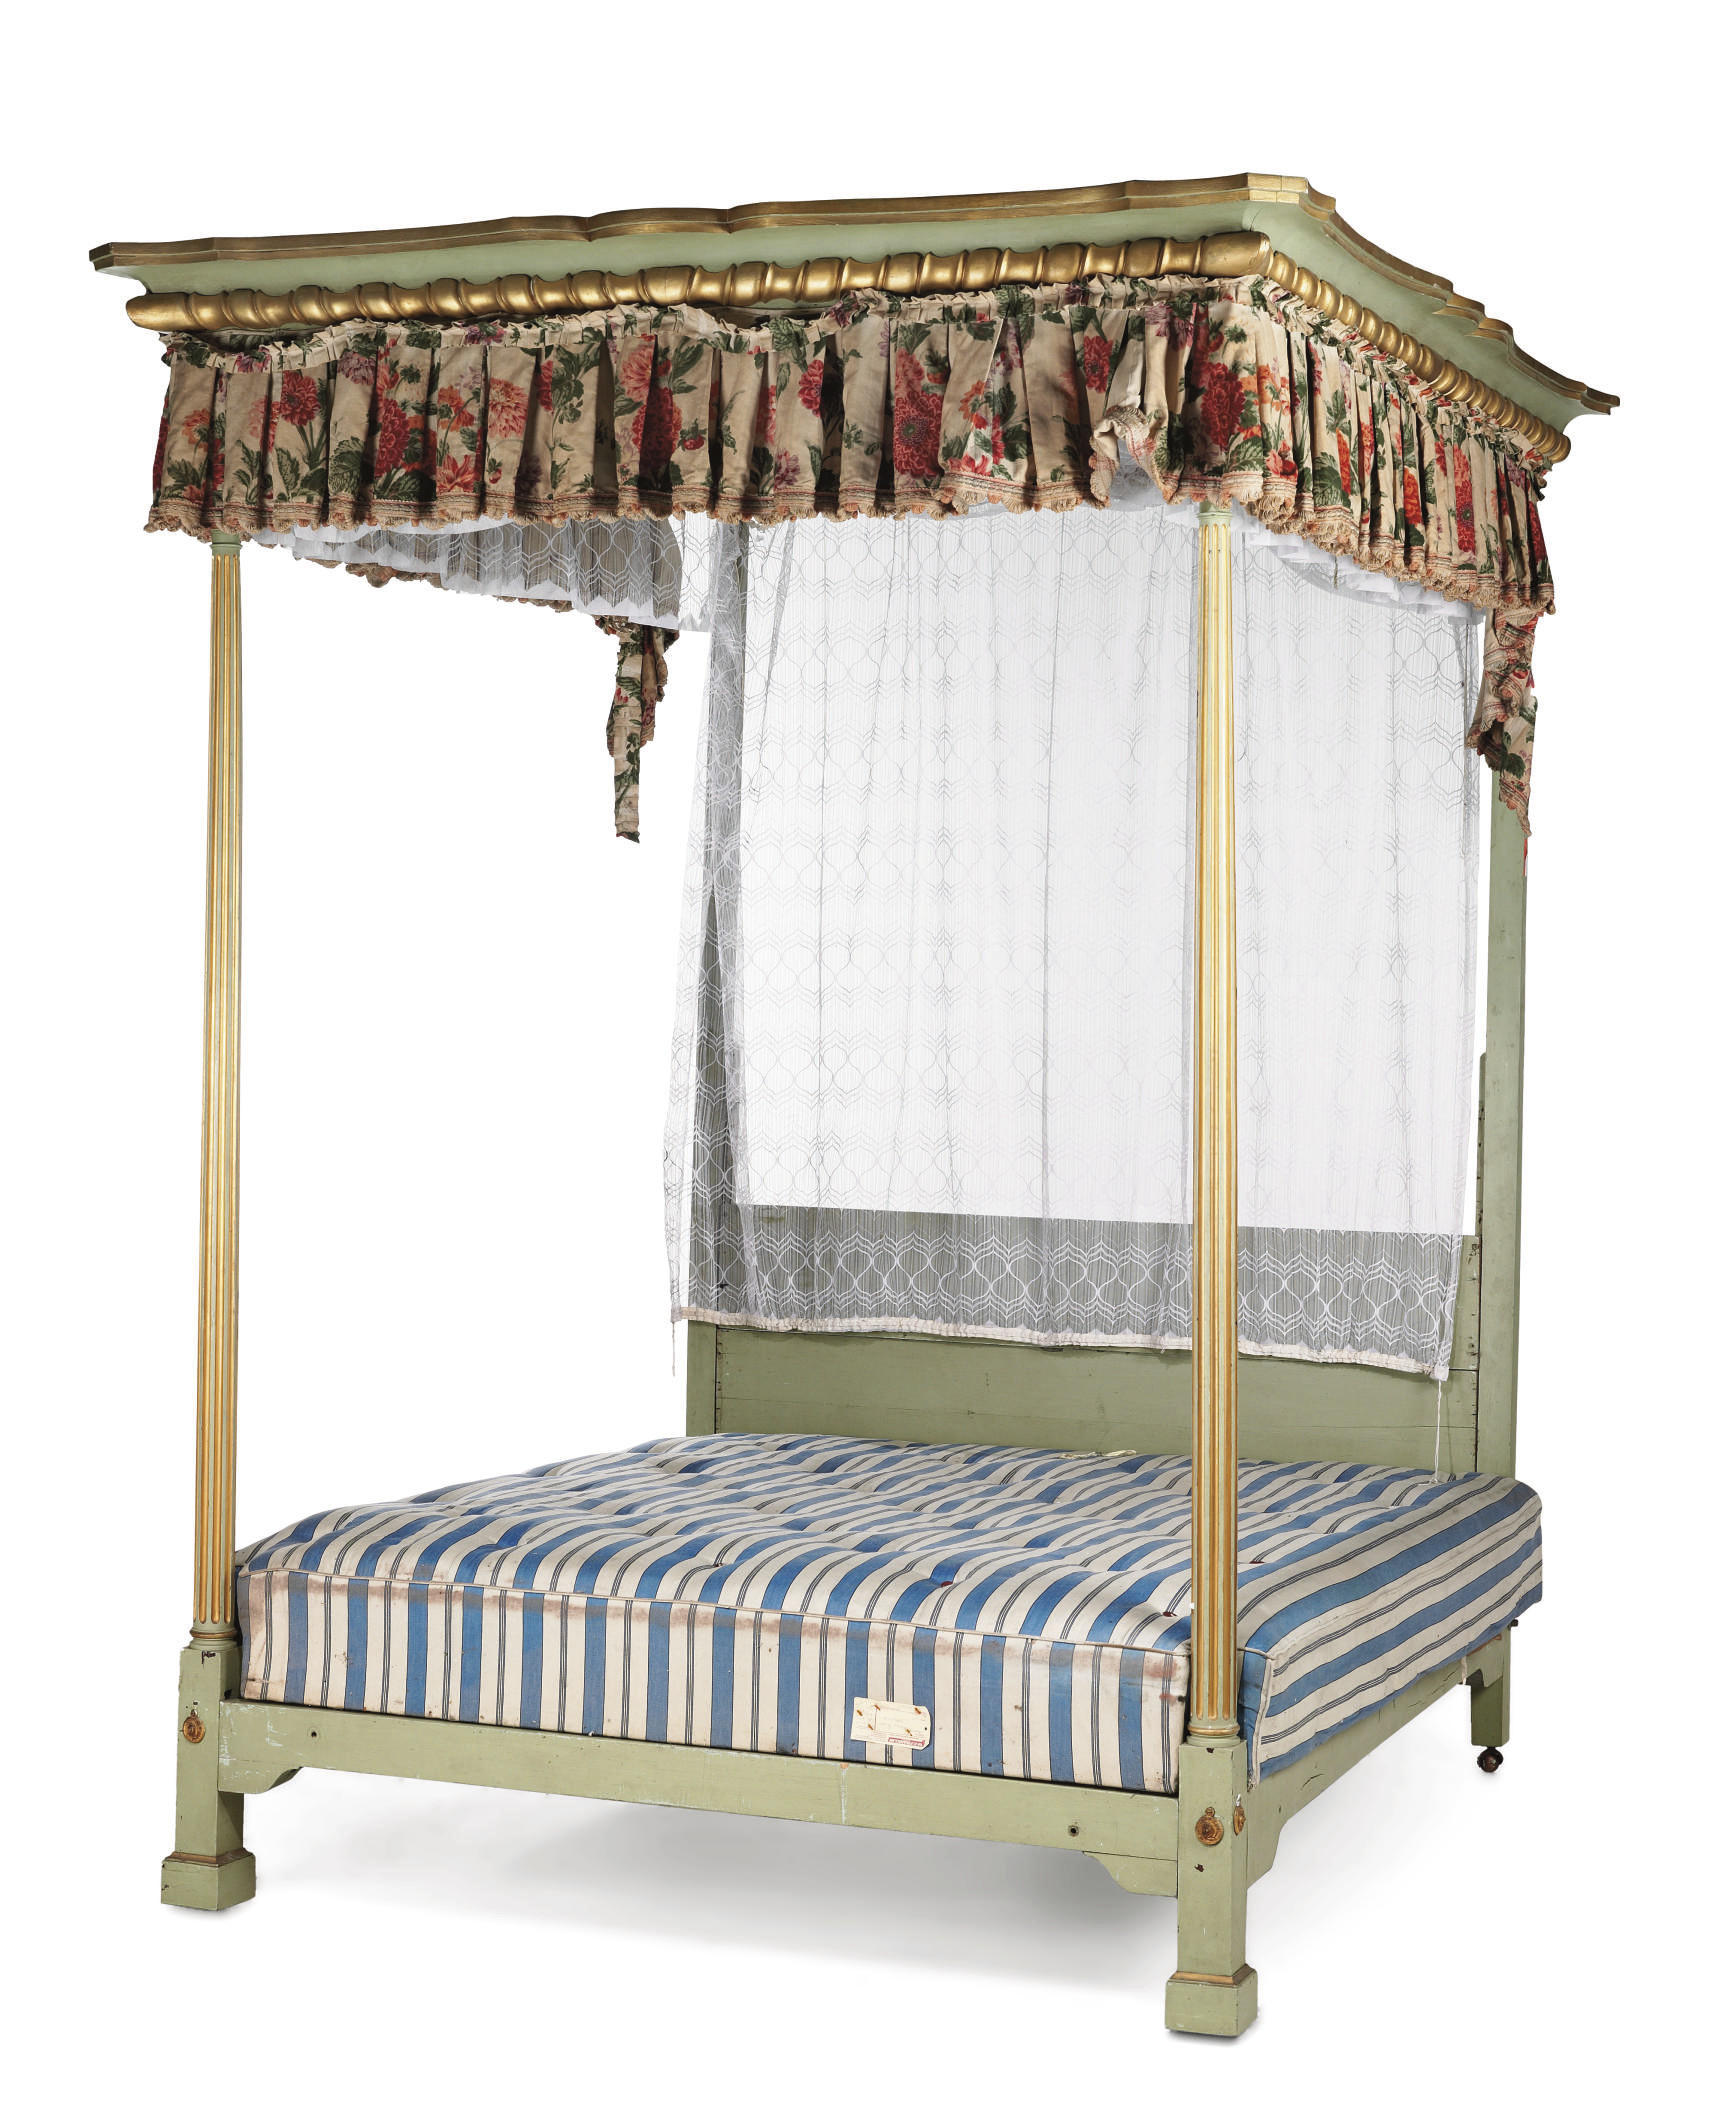 A PALE GREEN-PAINTED AND PARCEL-GILT MAHOGANY FOUR POSTER BED